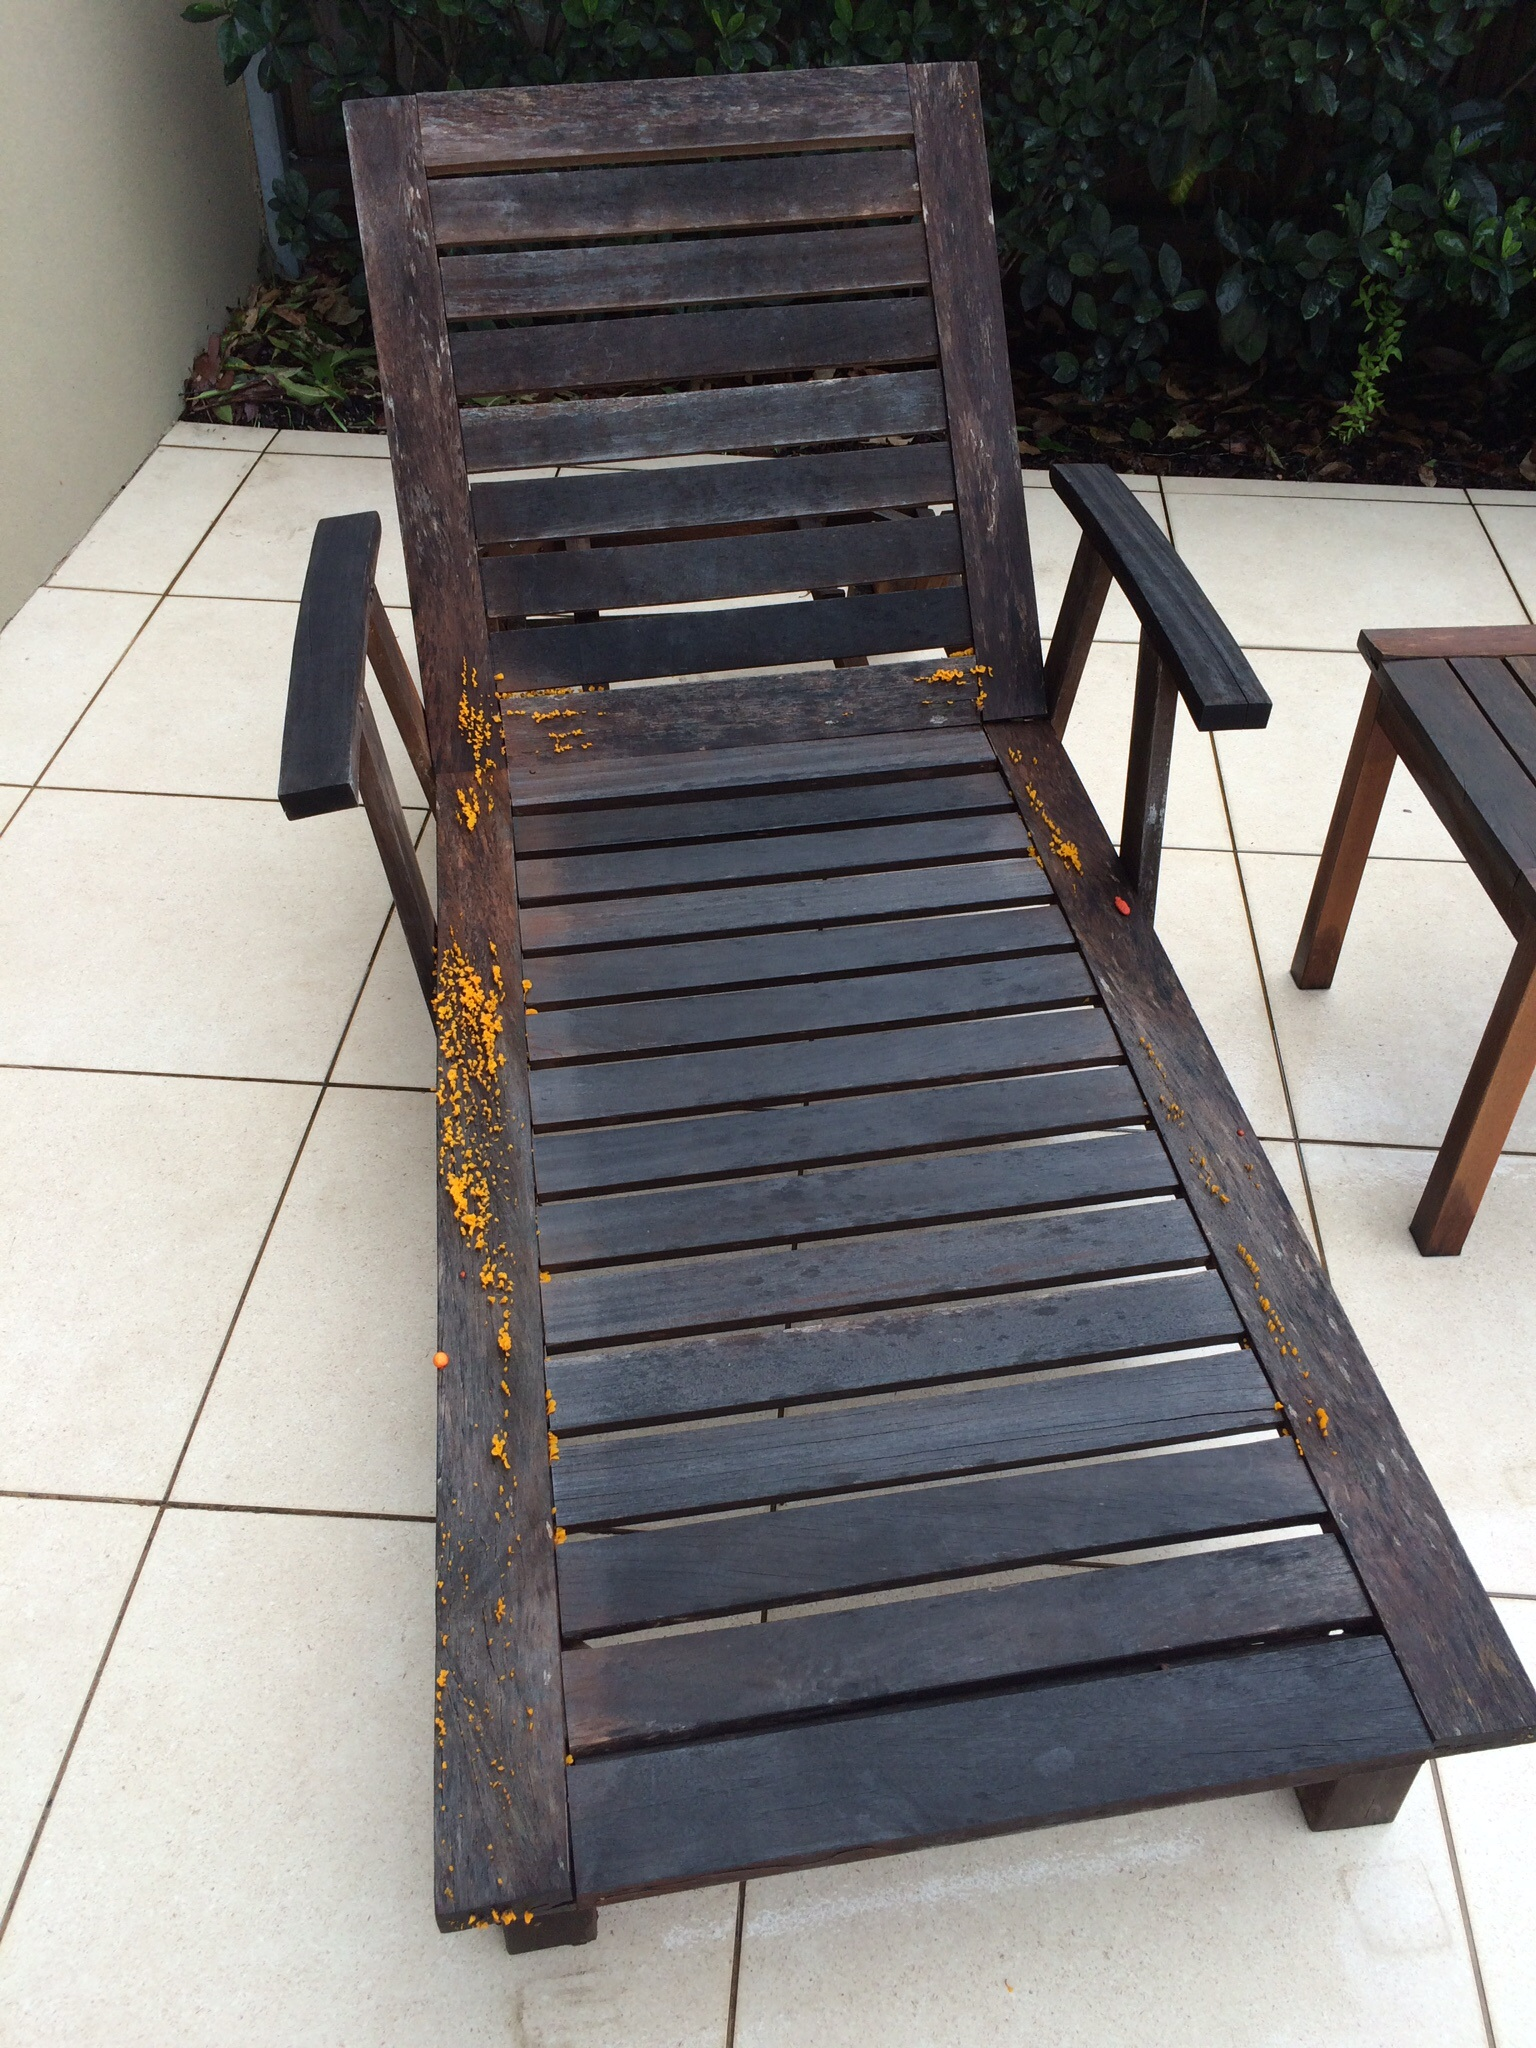 Orange Fungus Appears On Wooden Chairs After Rain